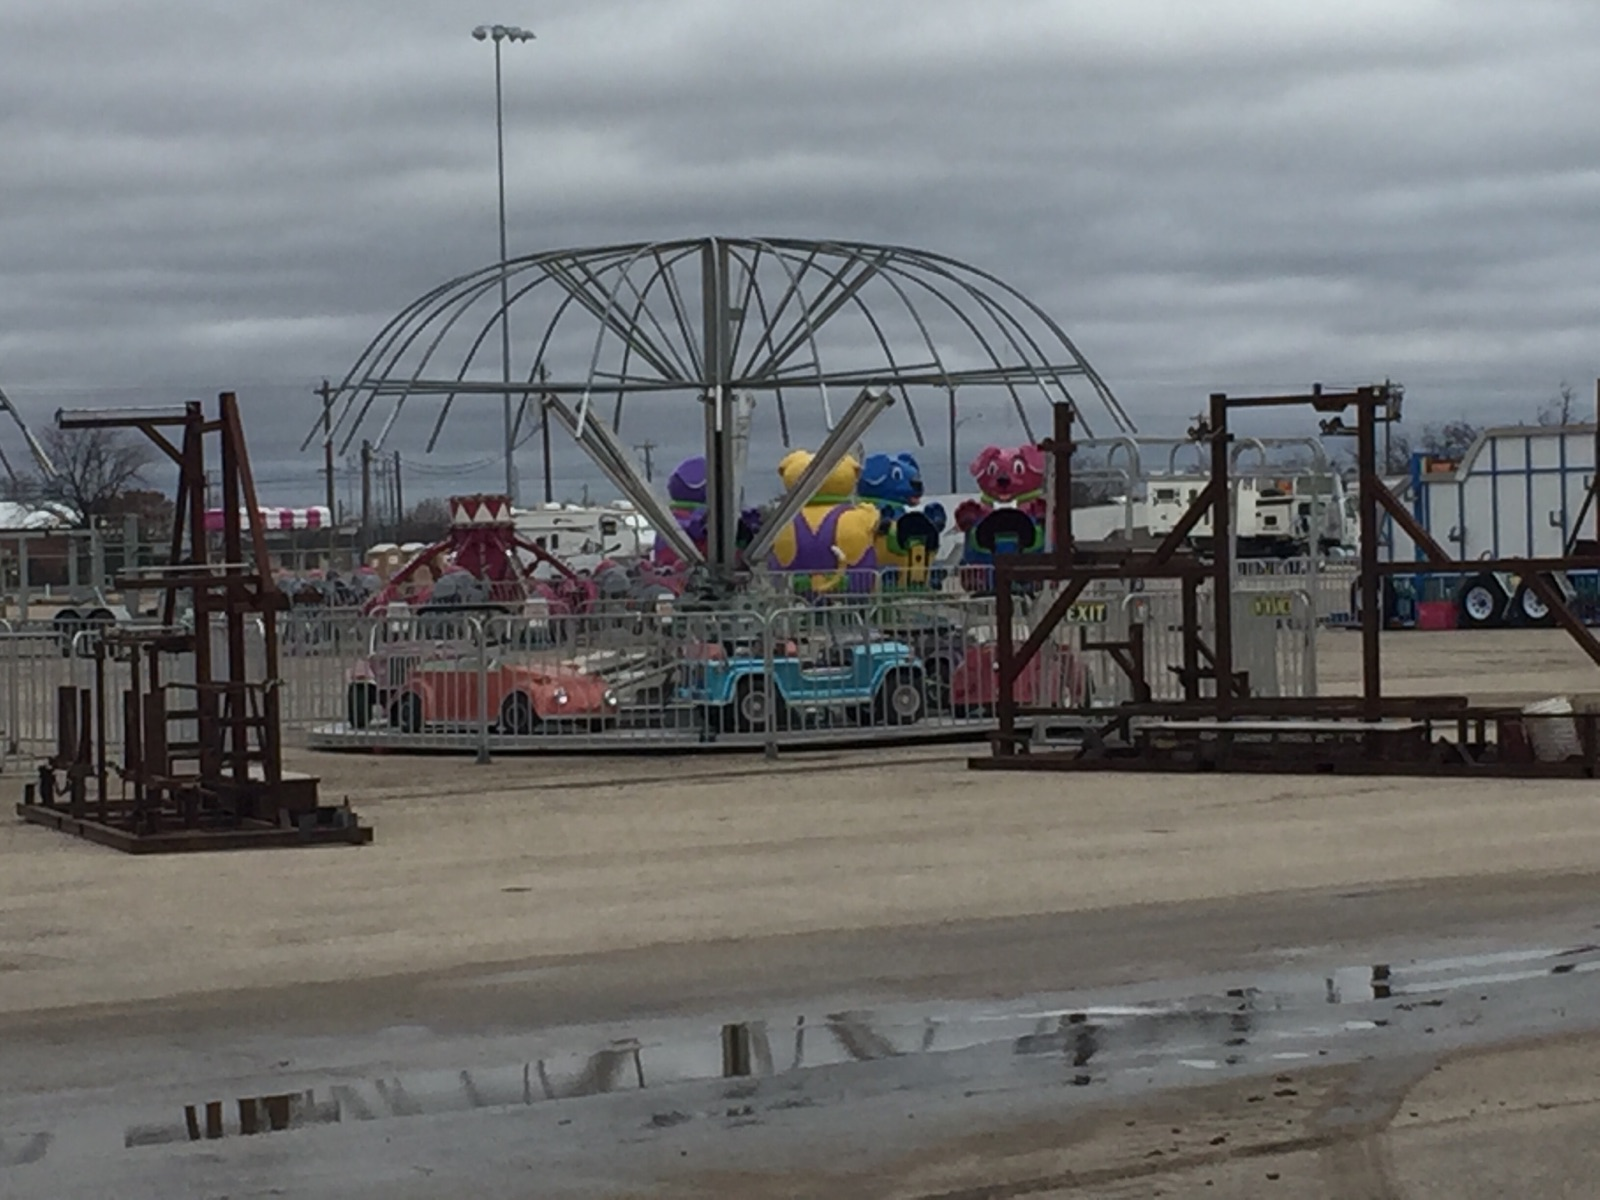 Alon carnival setting up at the San Angelo Fairgrounds 2018.  Yantis Green photo